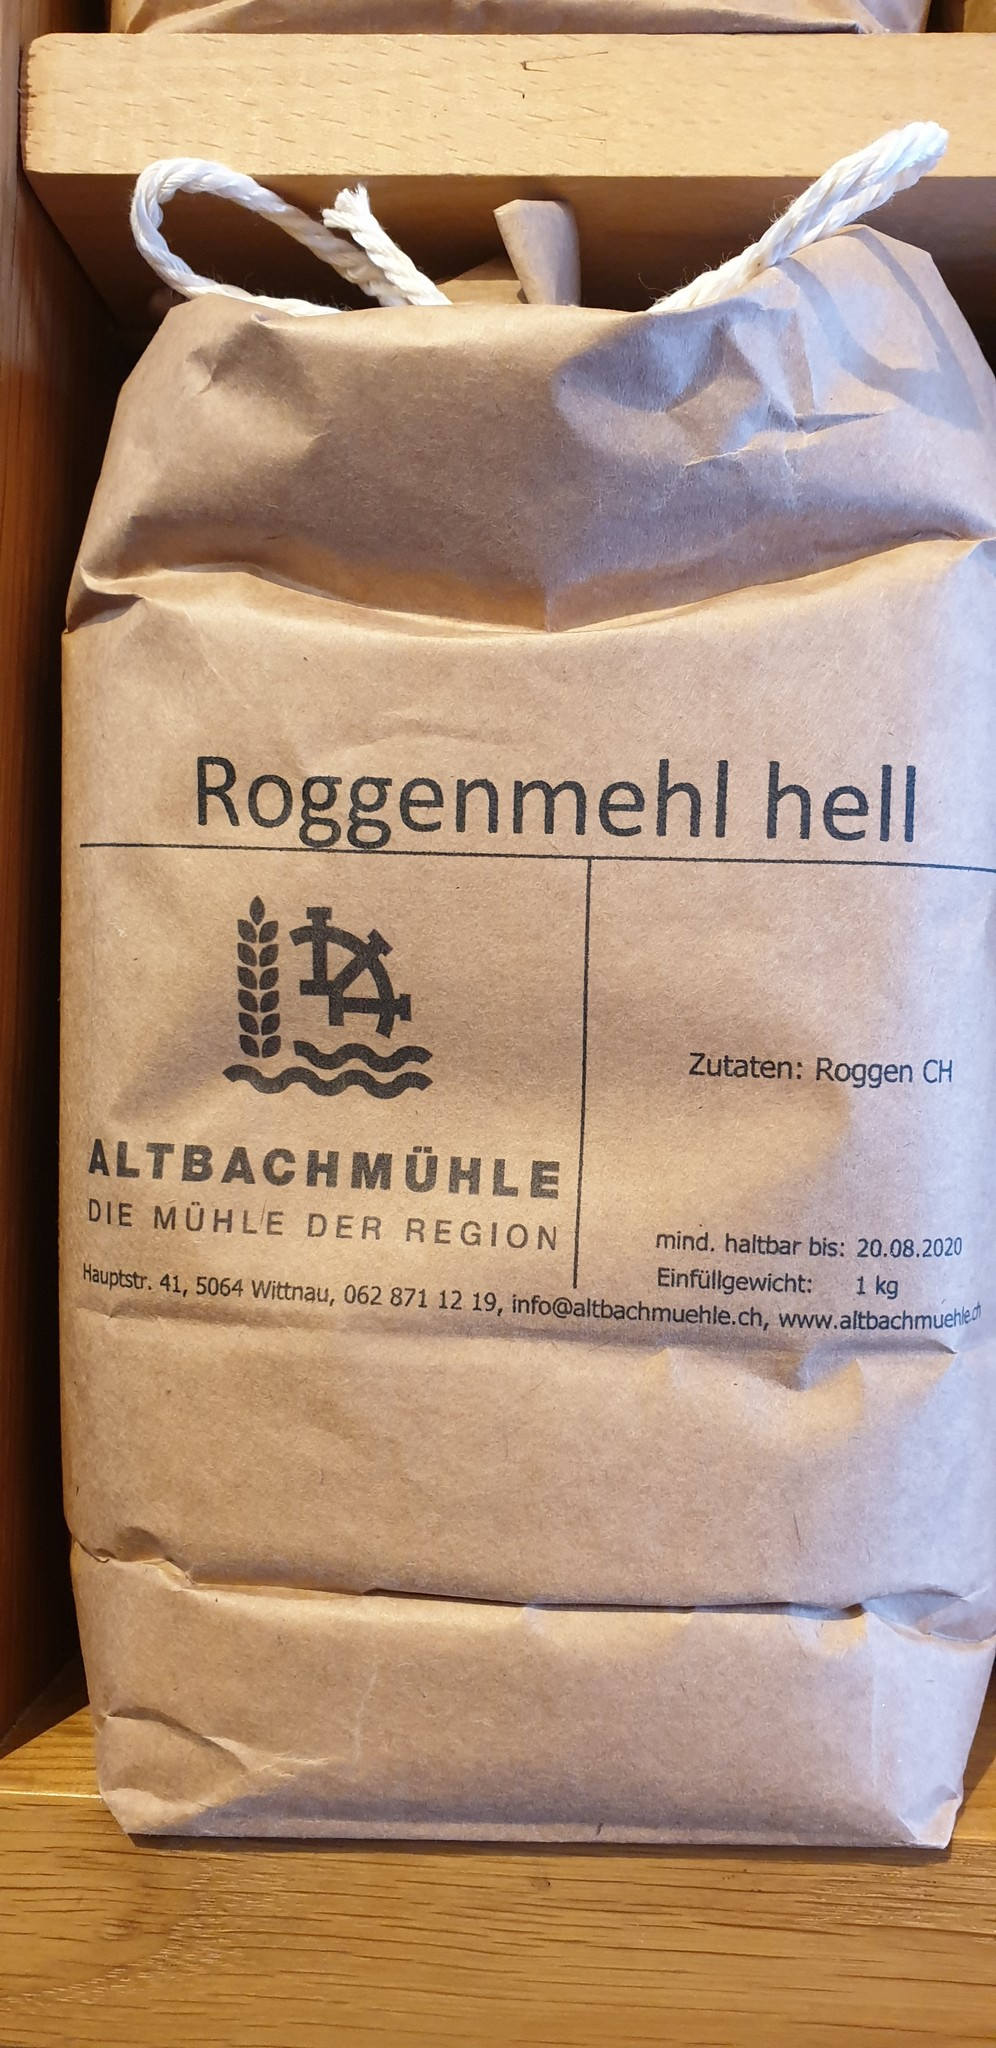 Altbachmühle Roggenmehl hell 1kg Altbachmühle